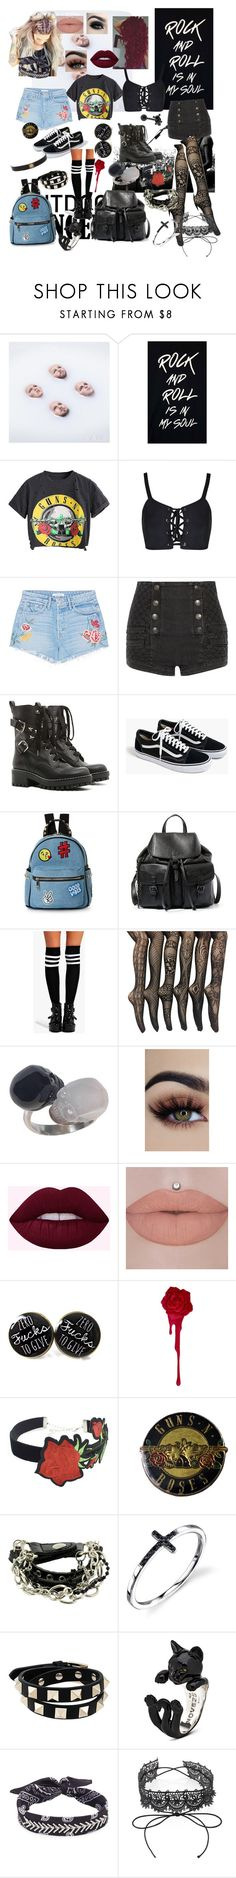 """Concerts"" by rachael-sweet ❤ liked on Polyvore featuring GRLFRND, Pierre Balmain, RED Valentino, J.Crew, IMoshion, Steve Madden, Boohoo, Too Faced Cosmetics, WithChic and Valentino"